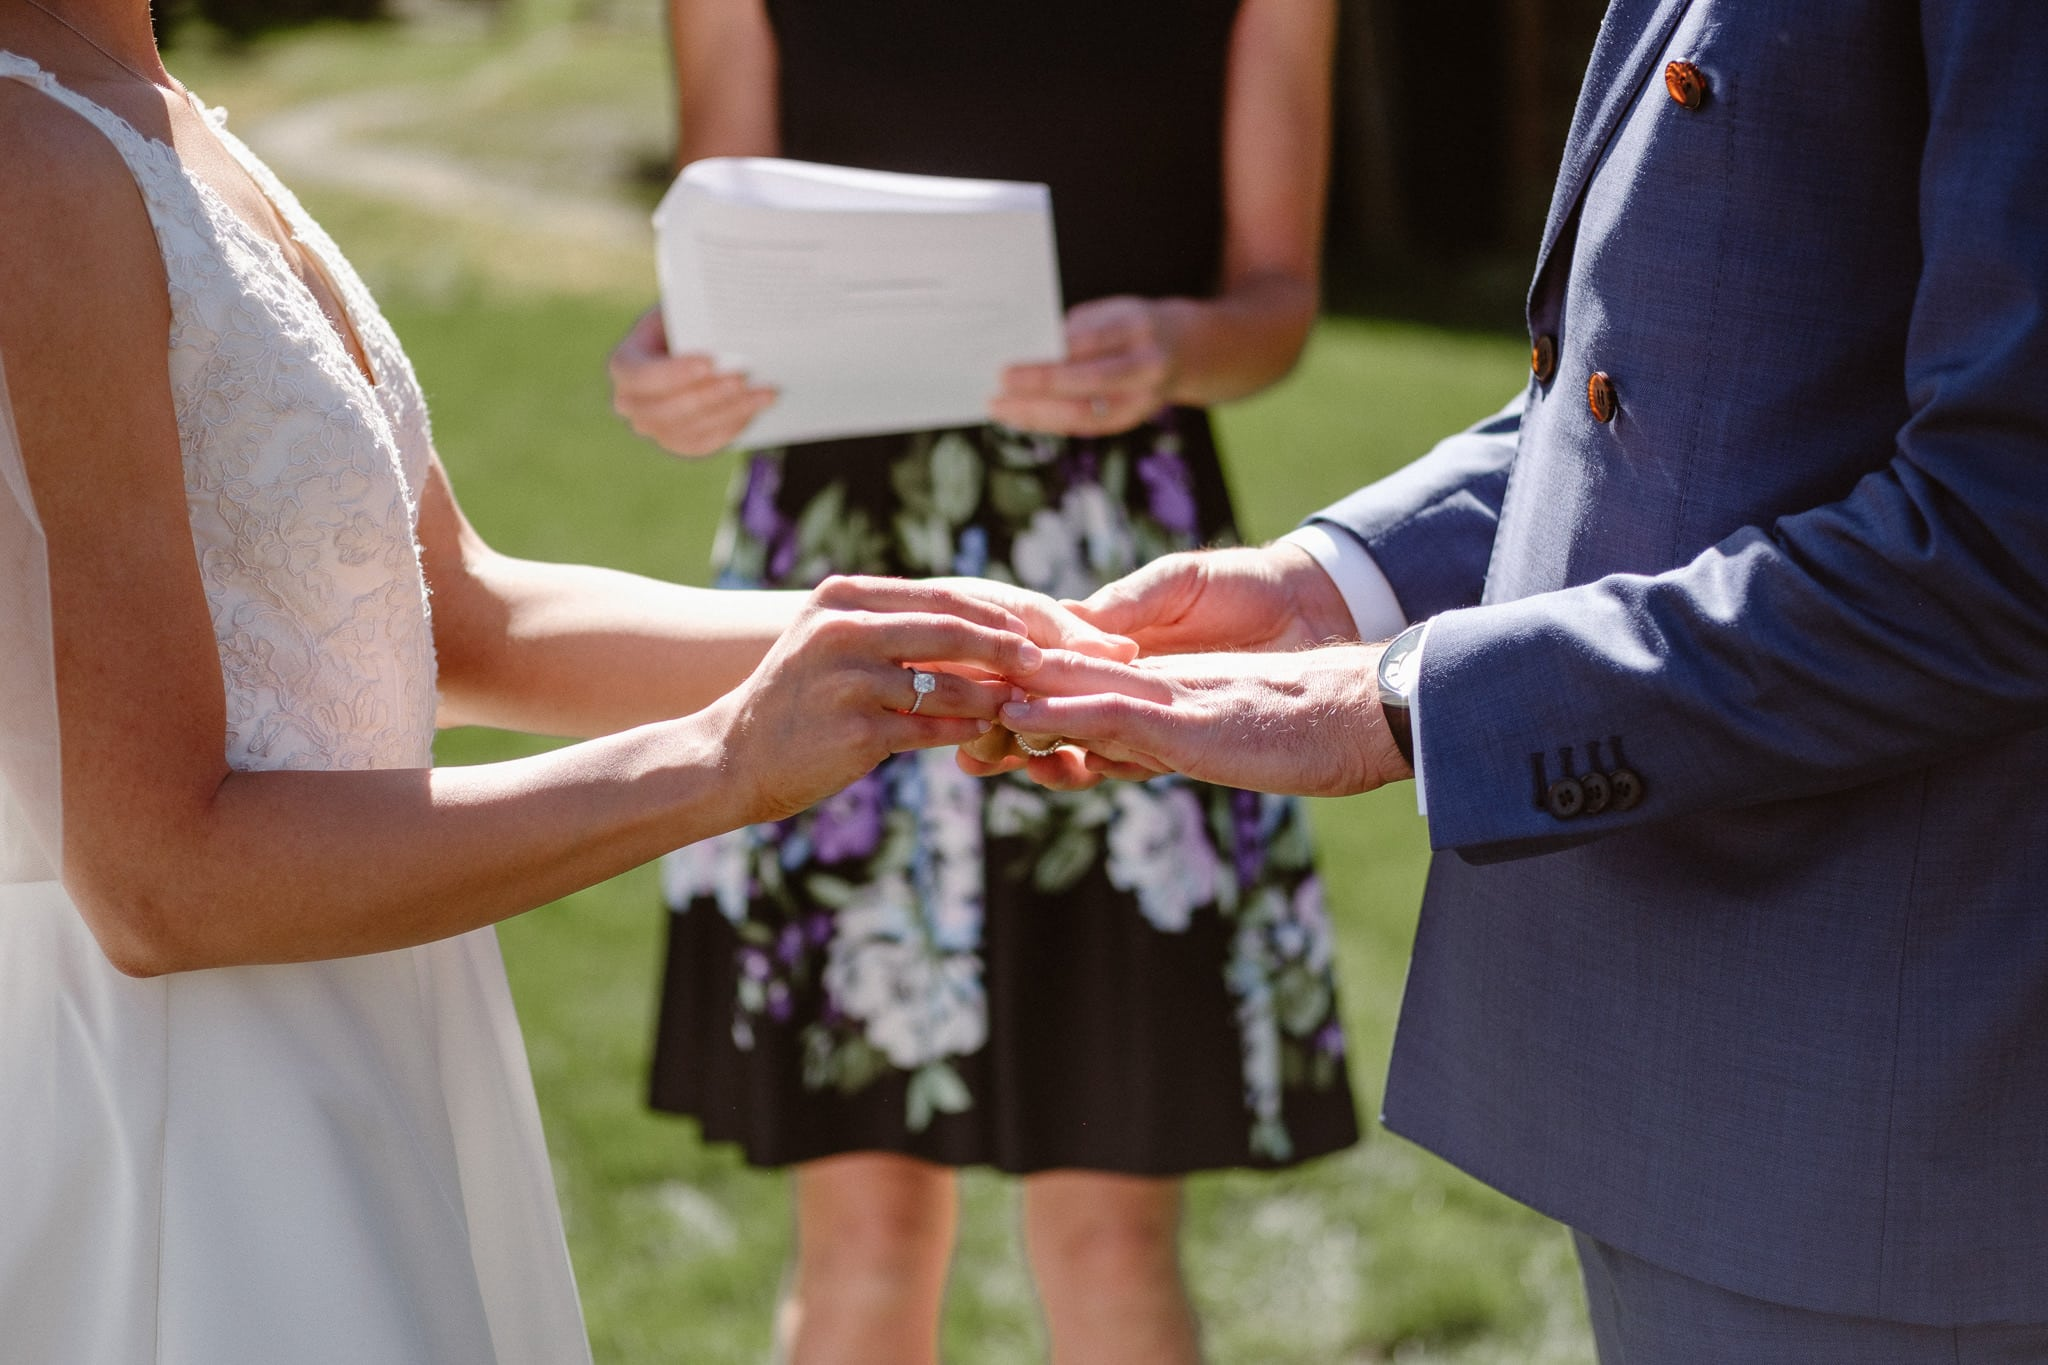 Bride and groom exchanging rings at Breckenridge Nordic Center wedding venue, outdoor log cabin wedding ceremony, Colorado wedding photographer